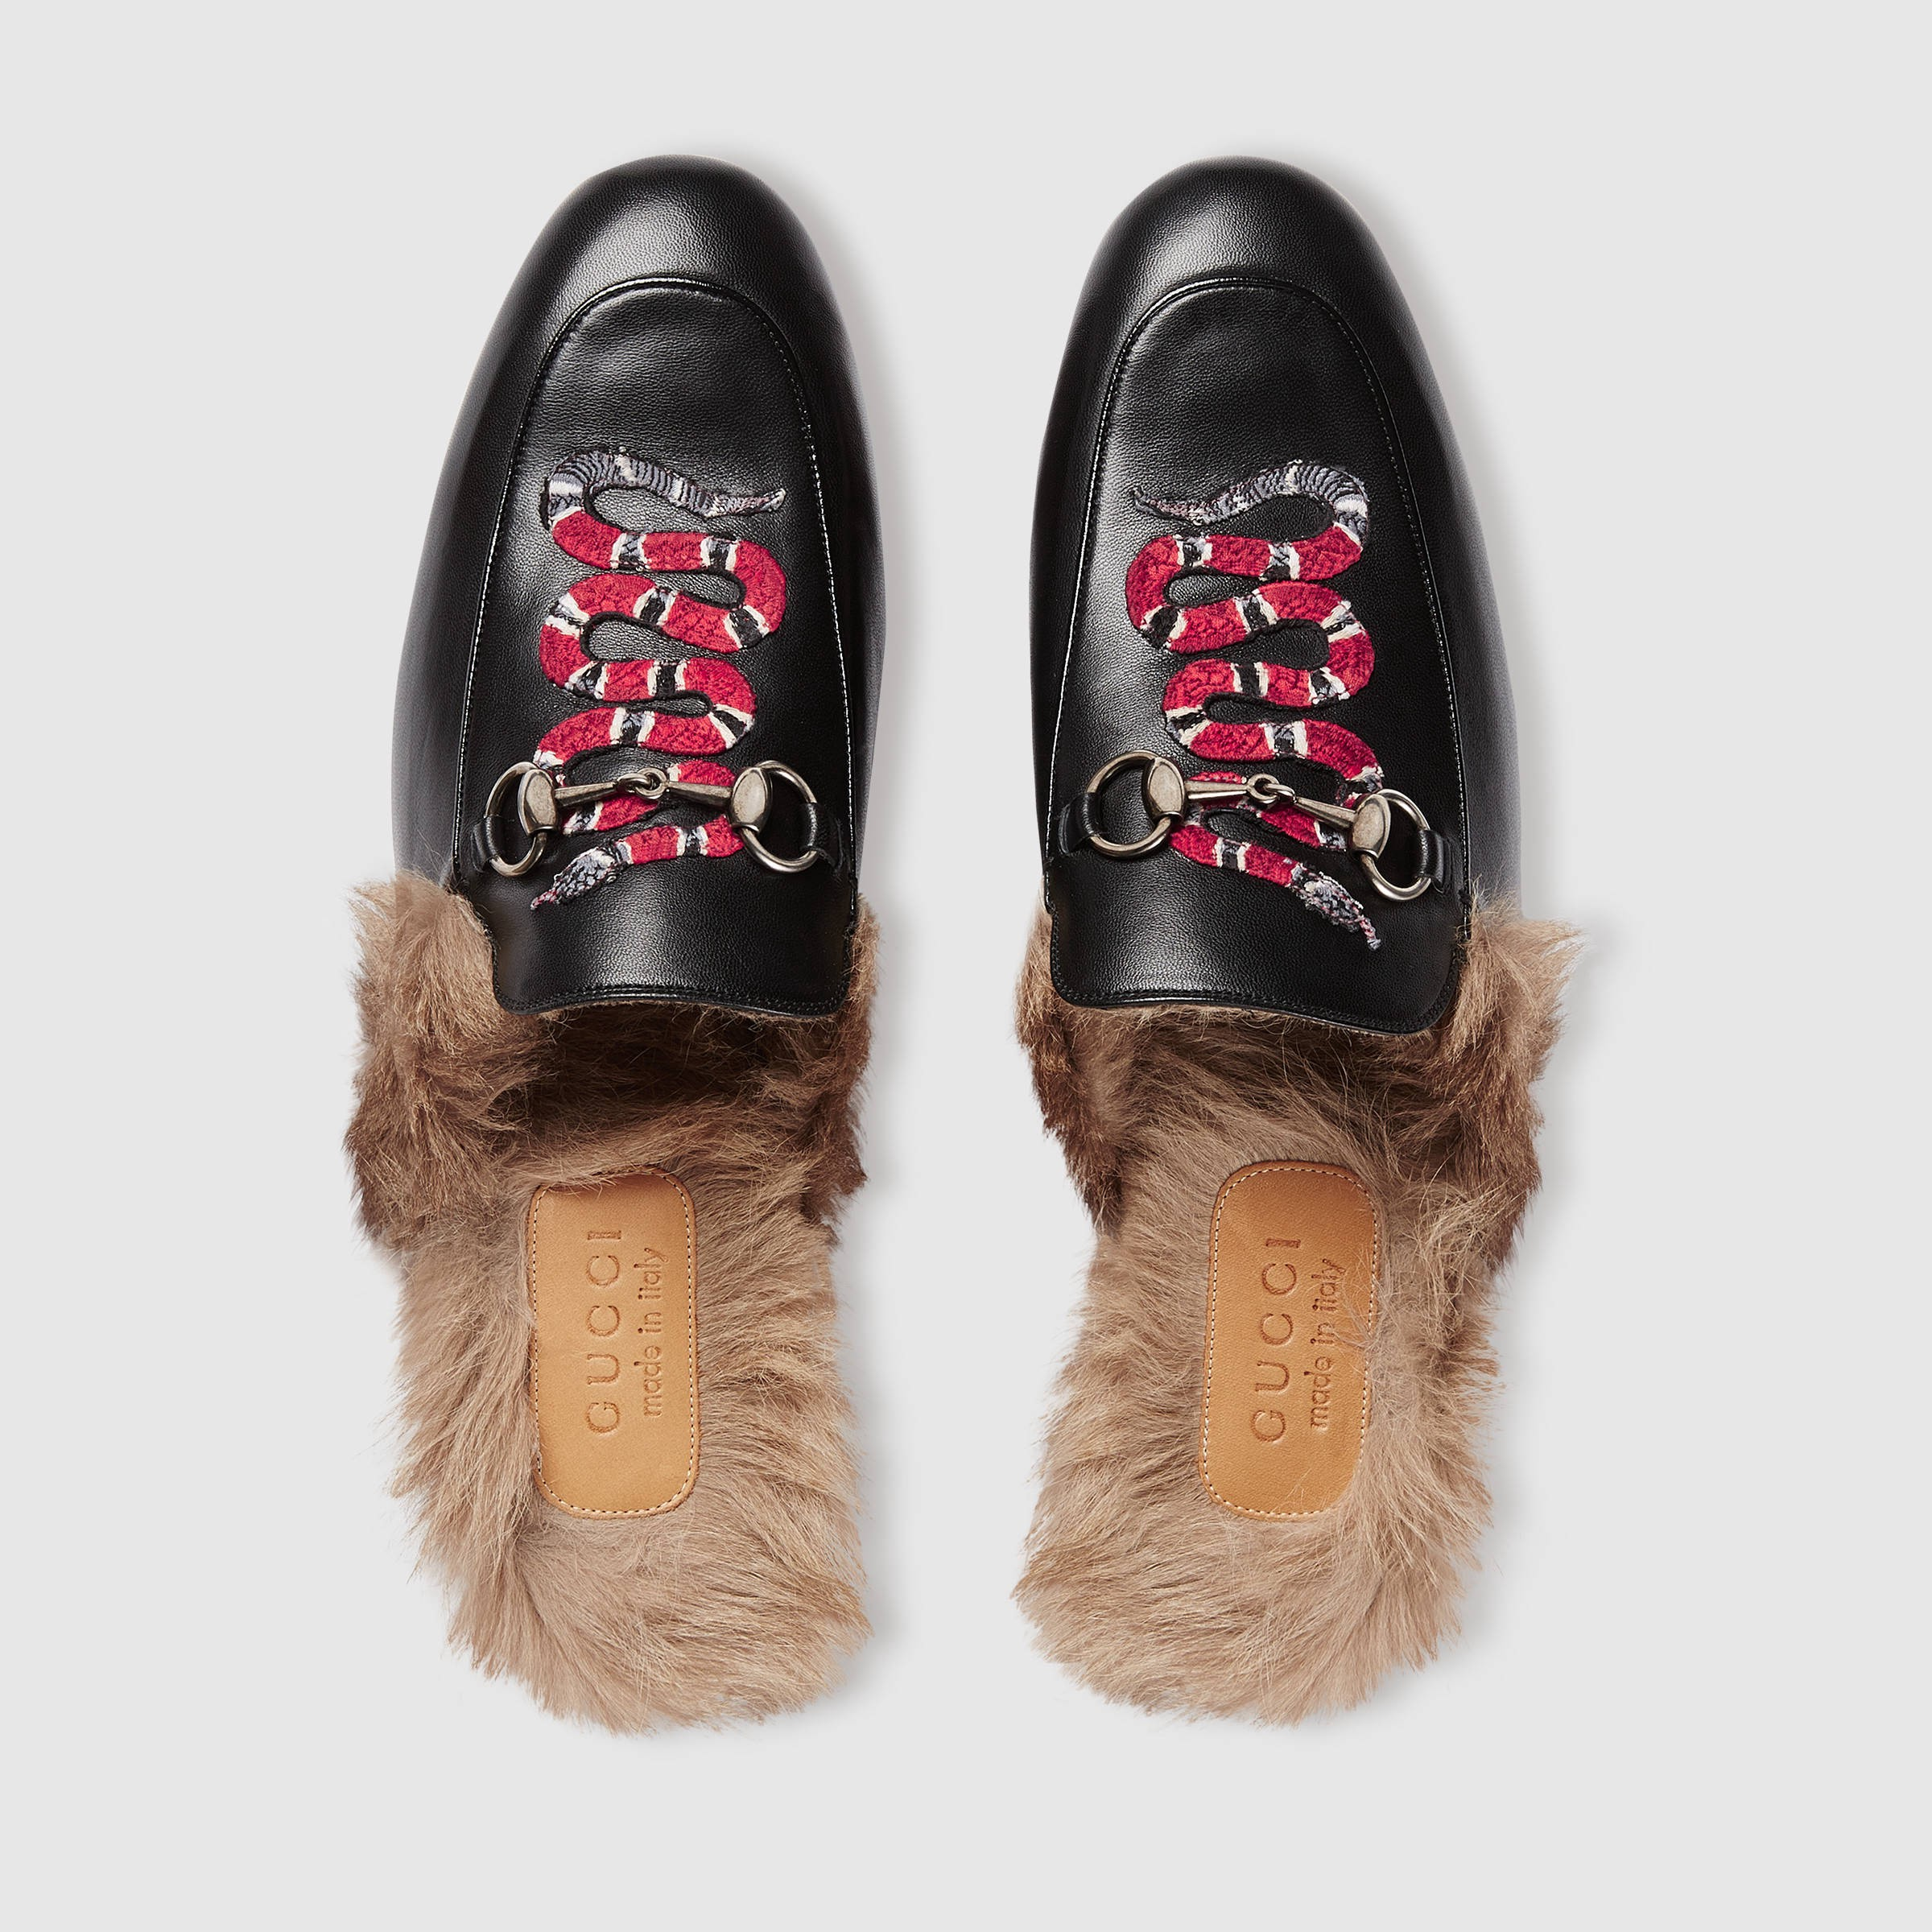 Gucci Princetown Leather Slipper (with